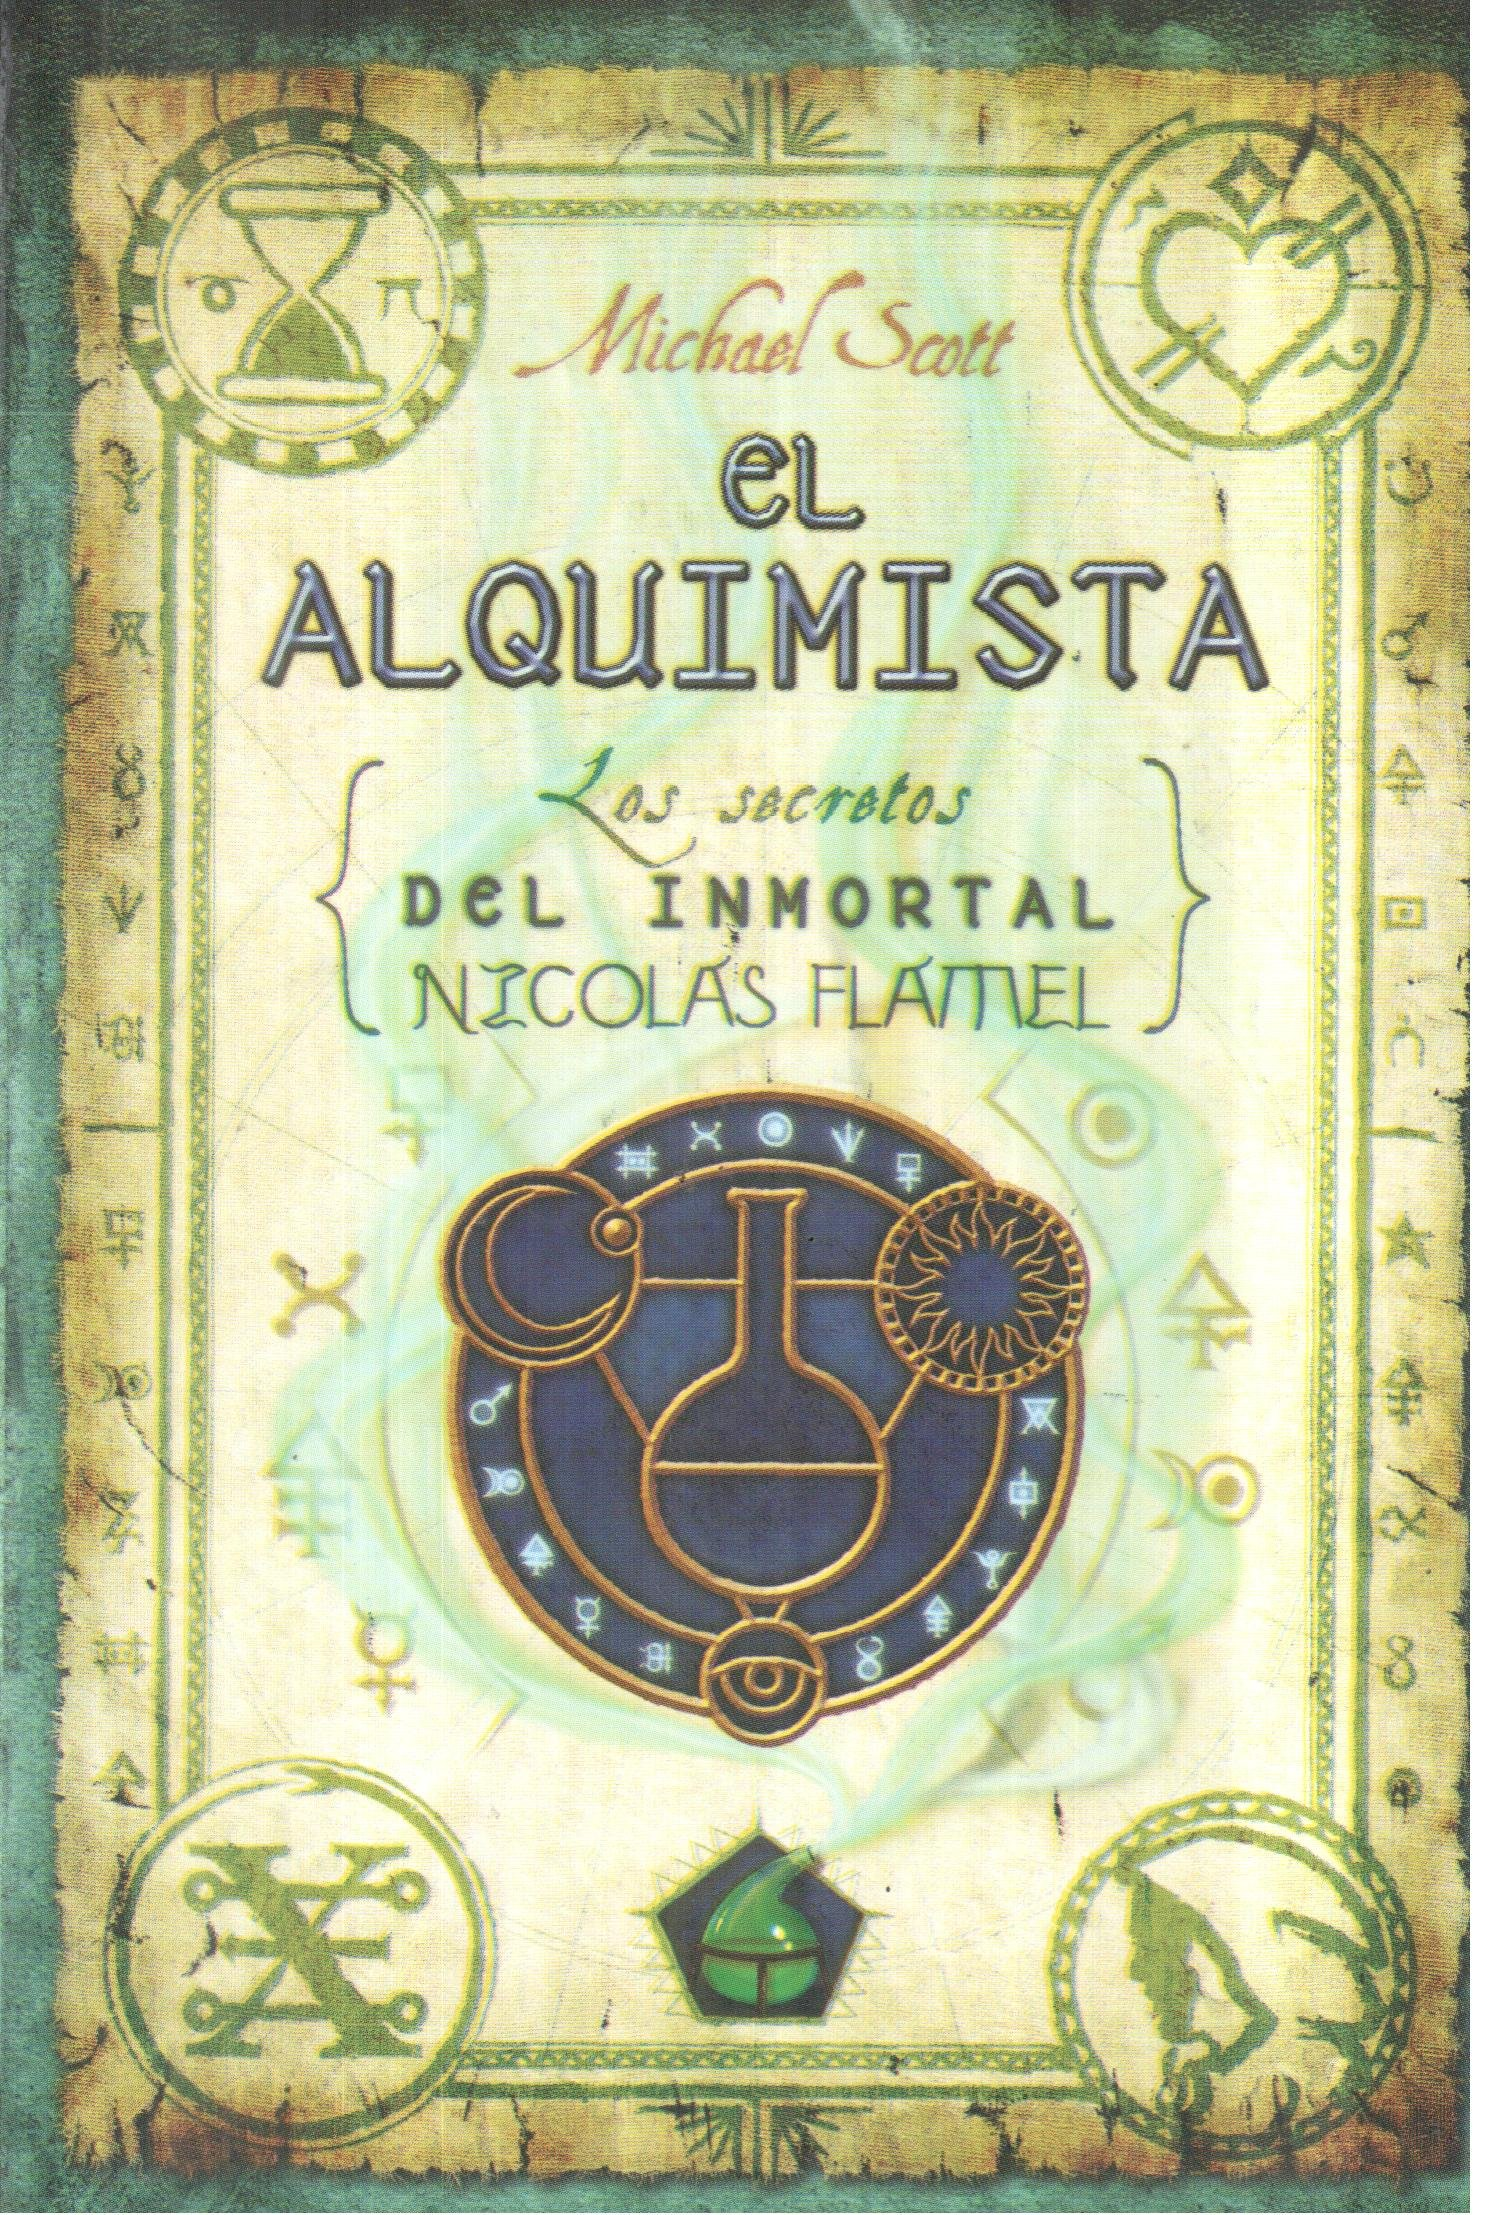 Amazon.com: El alquimista (Los secretos del inmortal Nicolas Flamel) (Spanish Edition) (9788496791039): Scott, Michael: Books